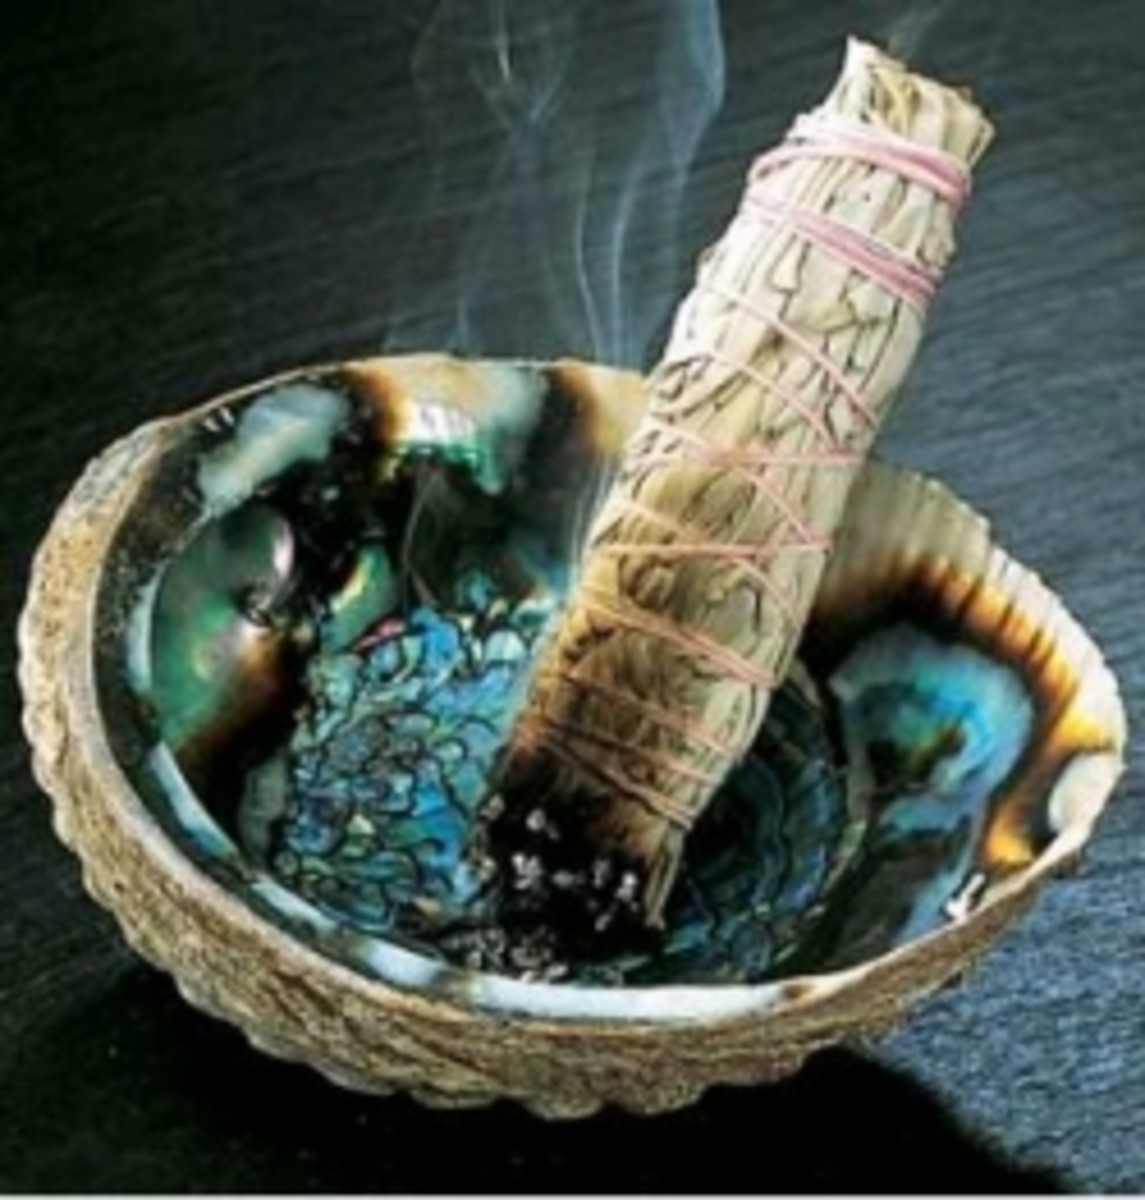 Smudge to get rid of negative energy hubpages How to get rid of bad energy